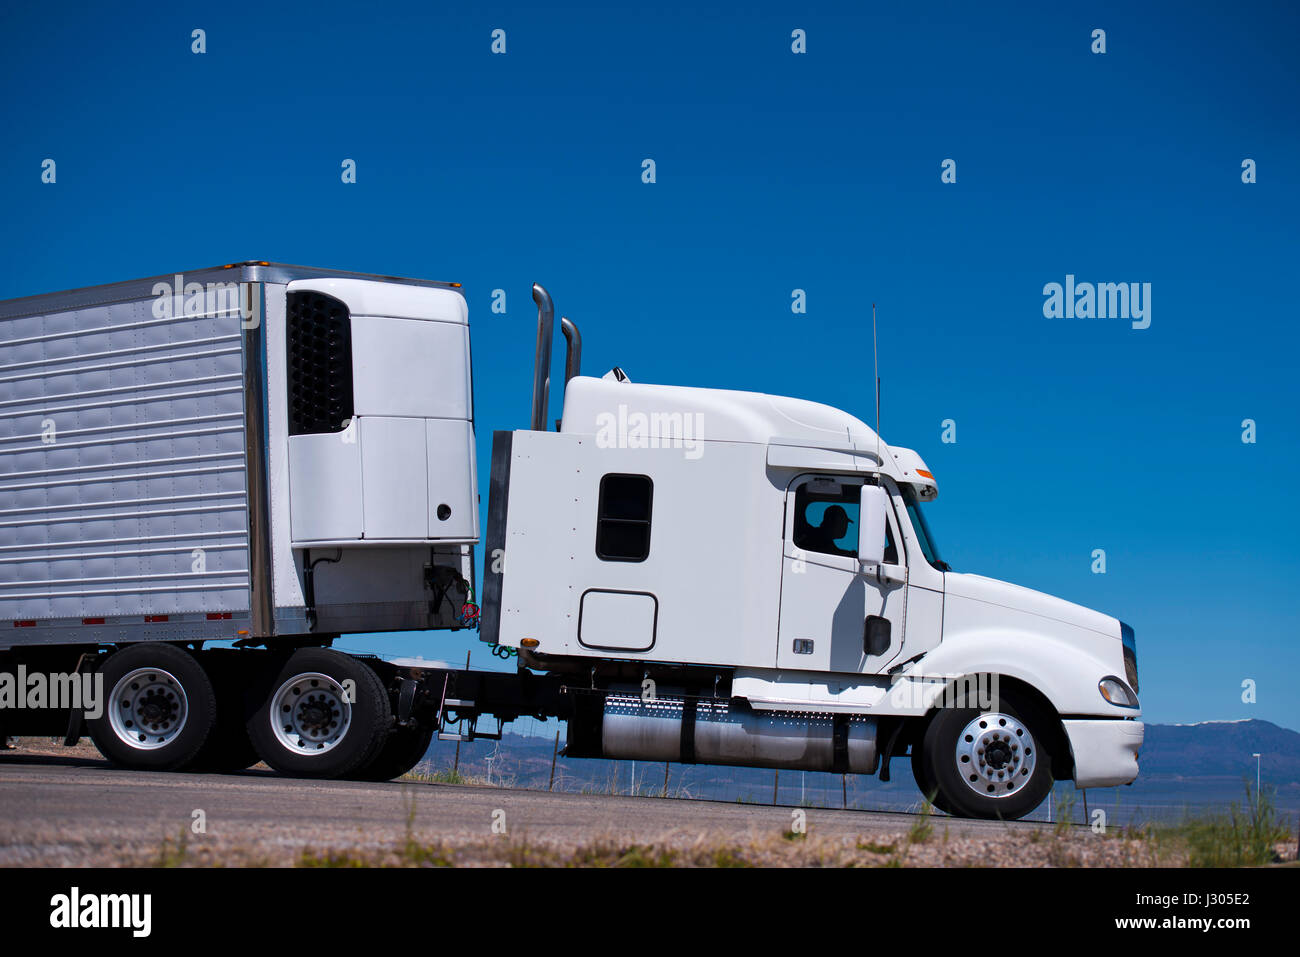 Big white truck with a trailer and a refrigeration unit on the road of the highway against the blue clear sky side view draws all the outlines